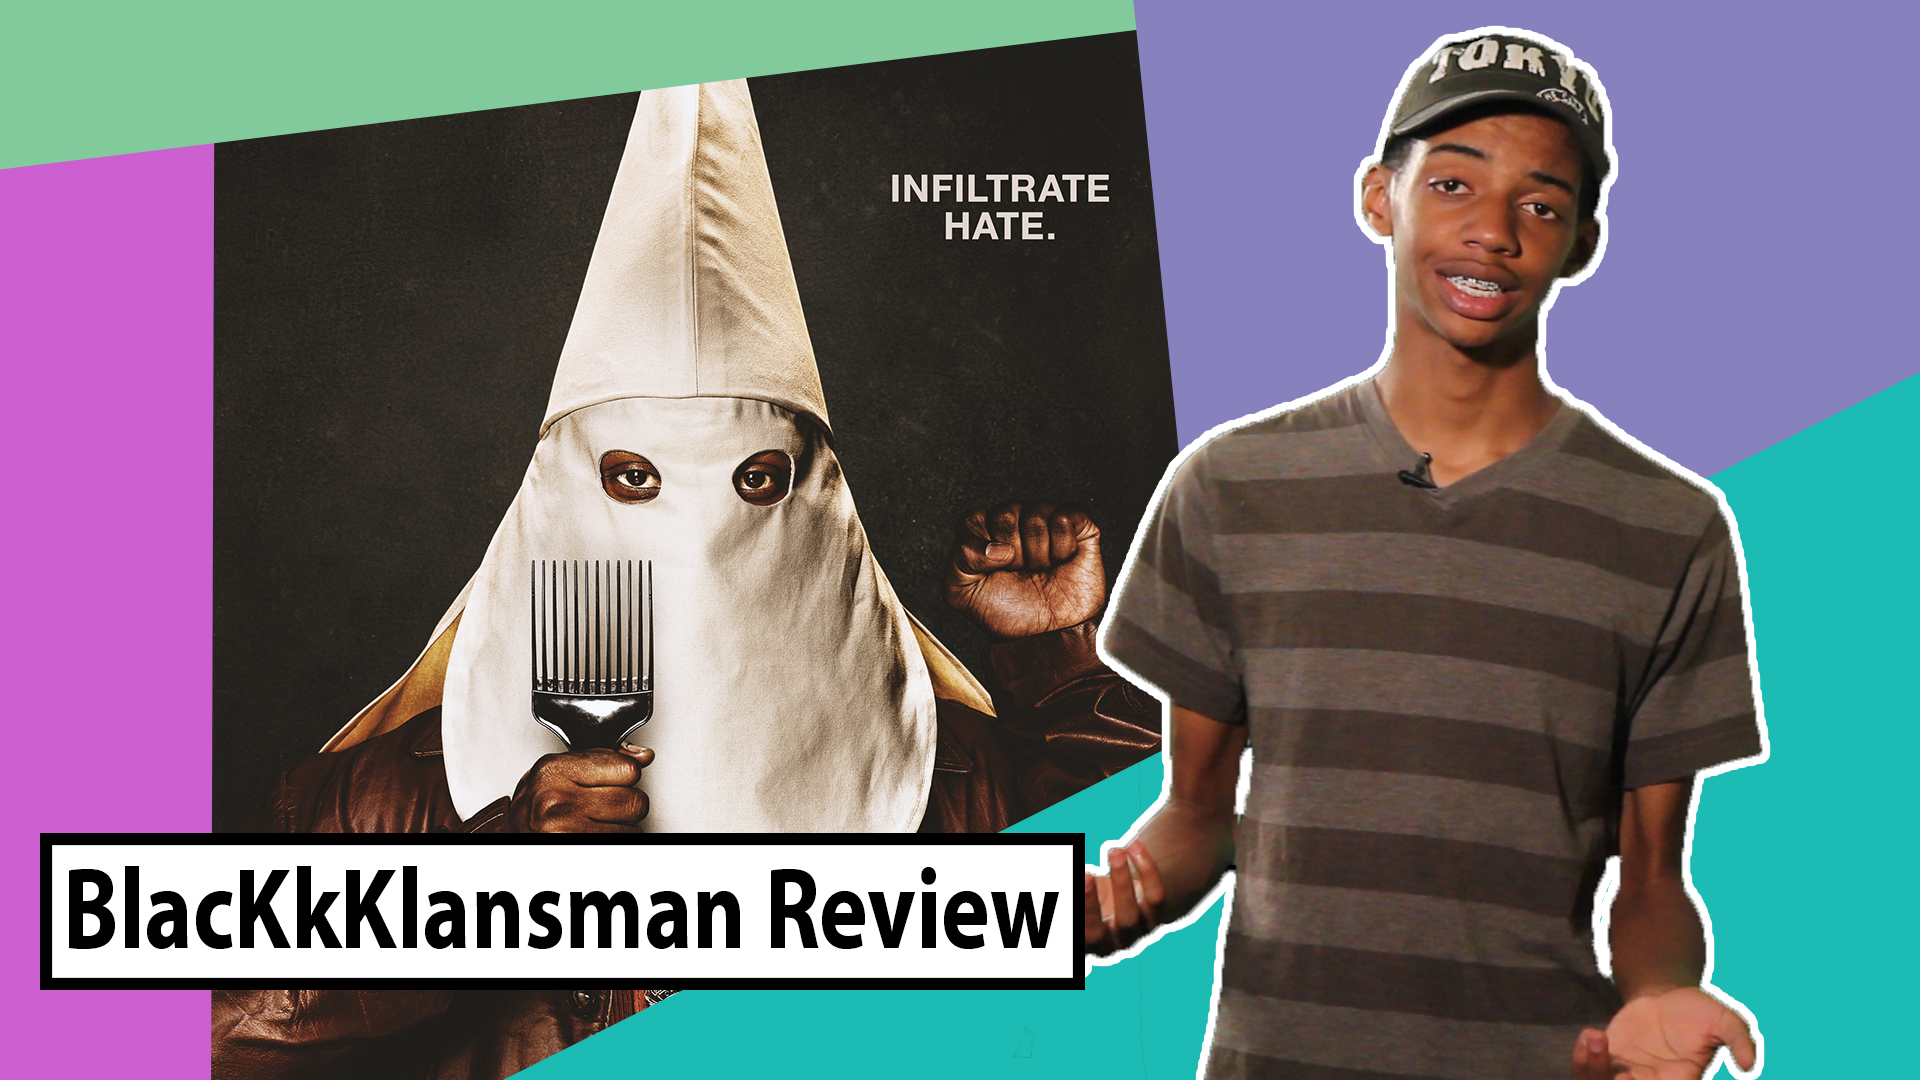 The Real Surprise of 'BlackkKlansman': It Humanizes the KKK